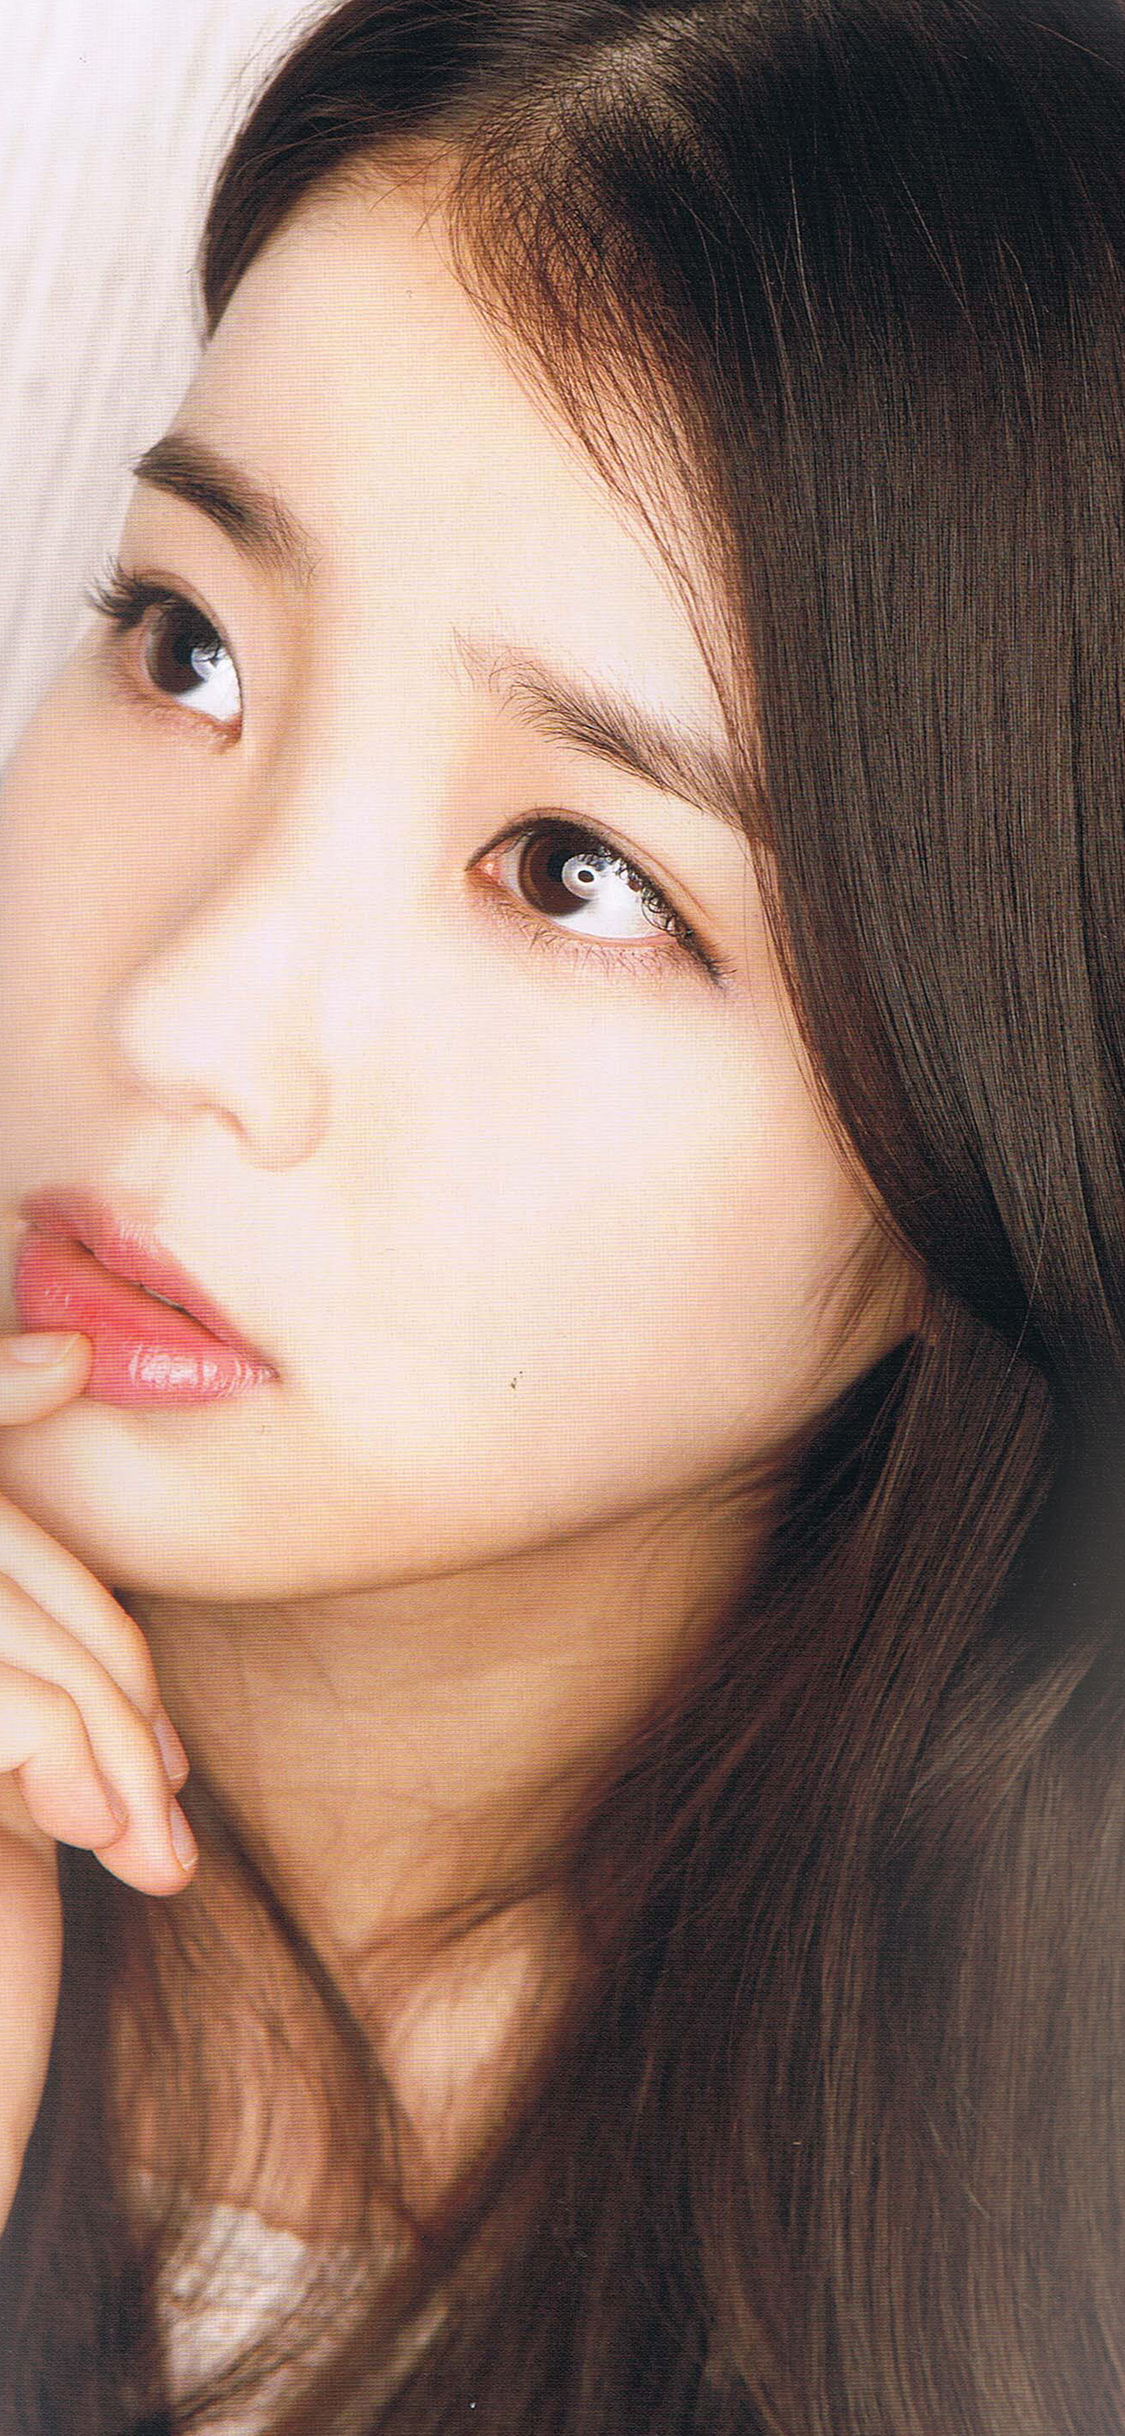 Cute Little Sister Wallpaper Hl65 Kpop Iu Girl Music Cute Wallpaper